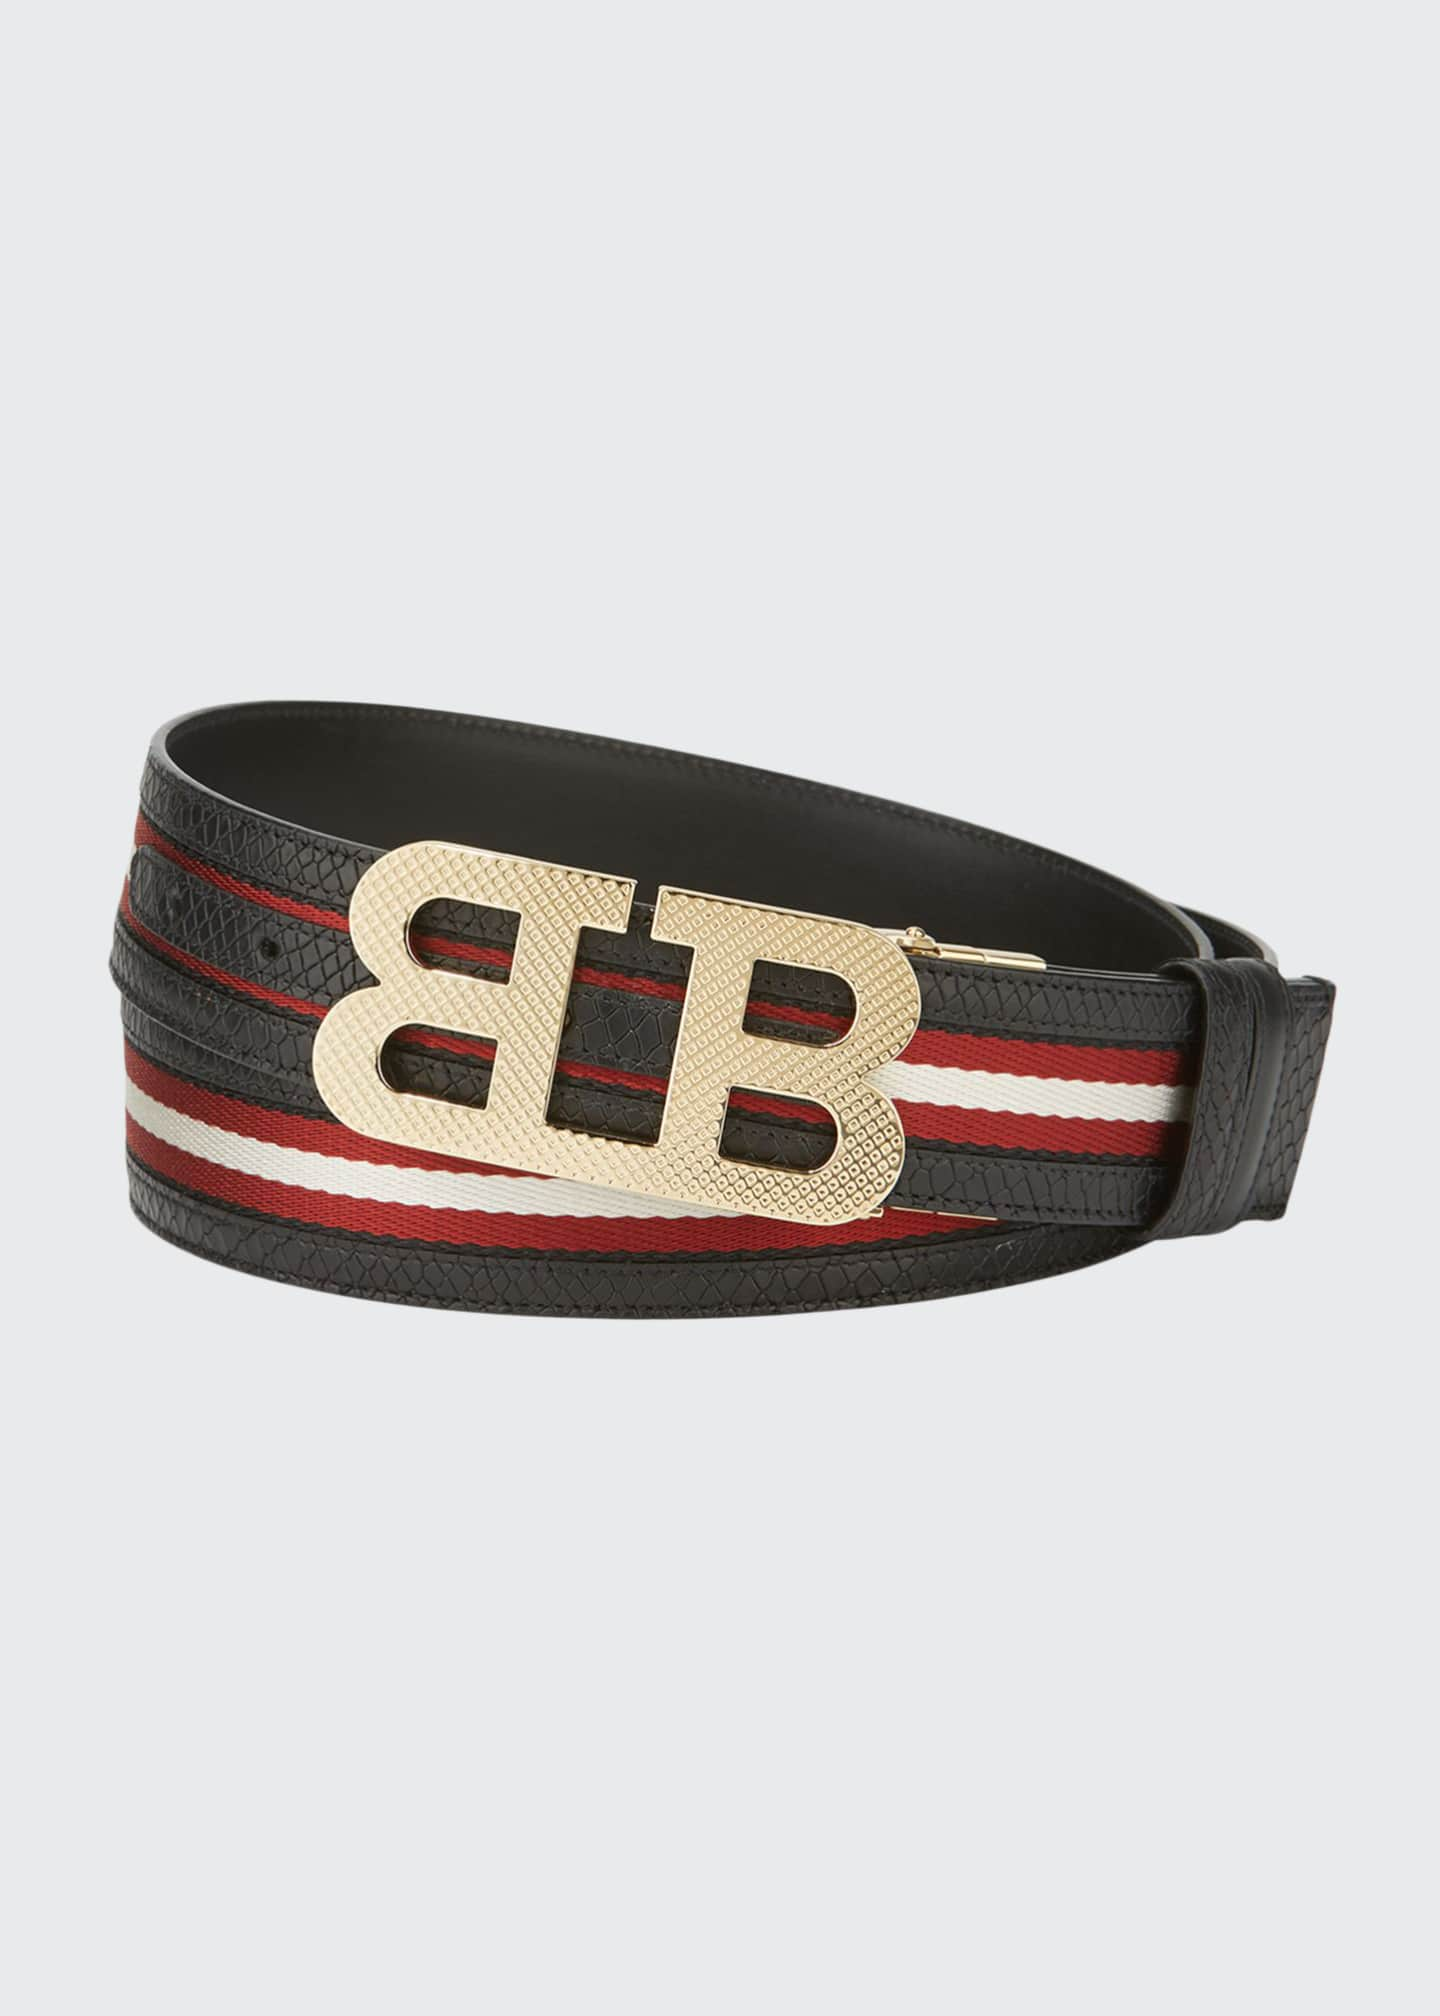 Image 1 of 1: Men's Mirror B Trainspotting Reversible Belt